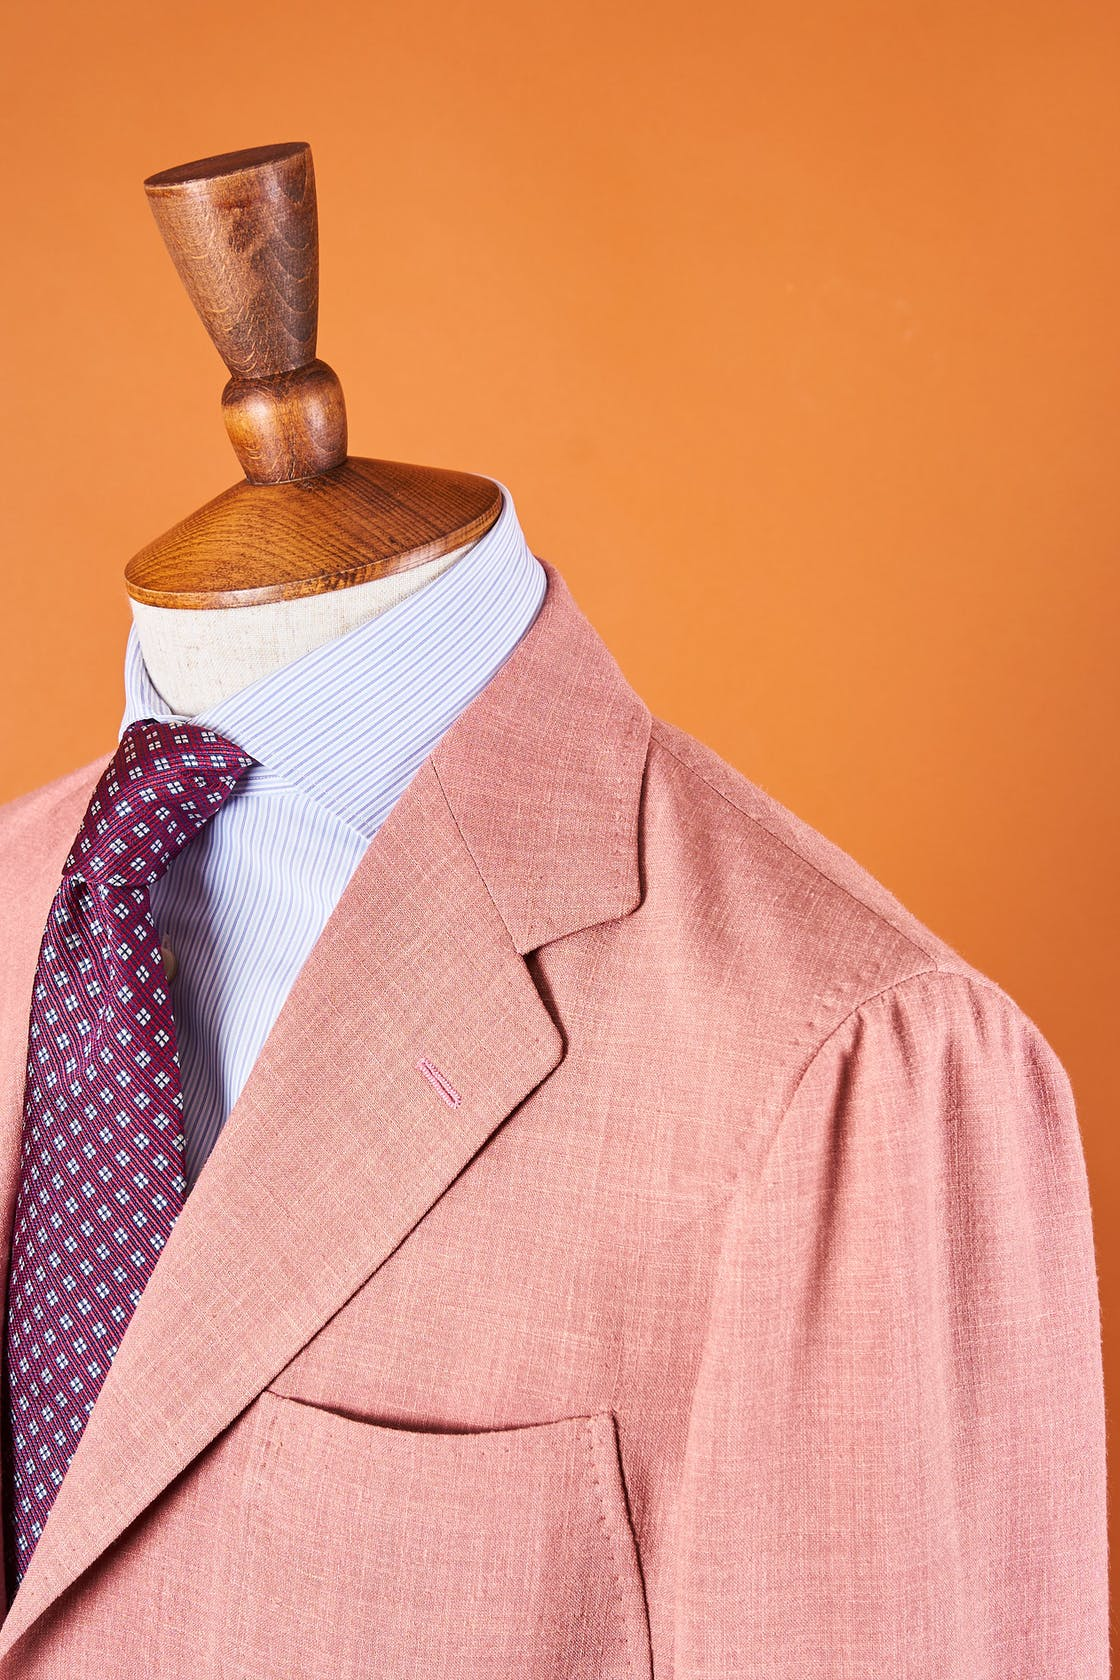 Ring Jacket Model 7 Pink Wool/Silk/Linen Sport Coat *sample*